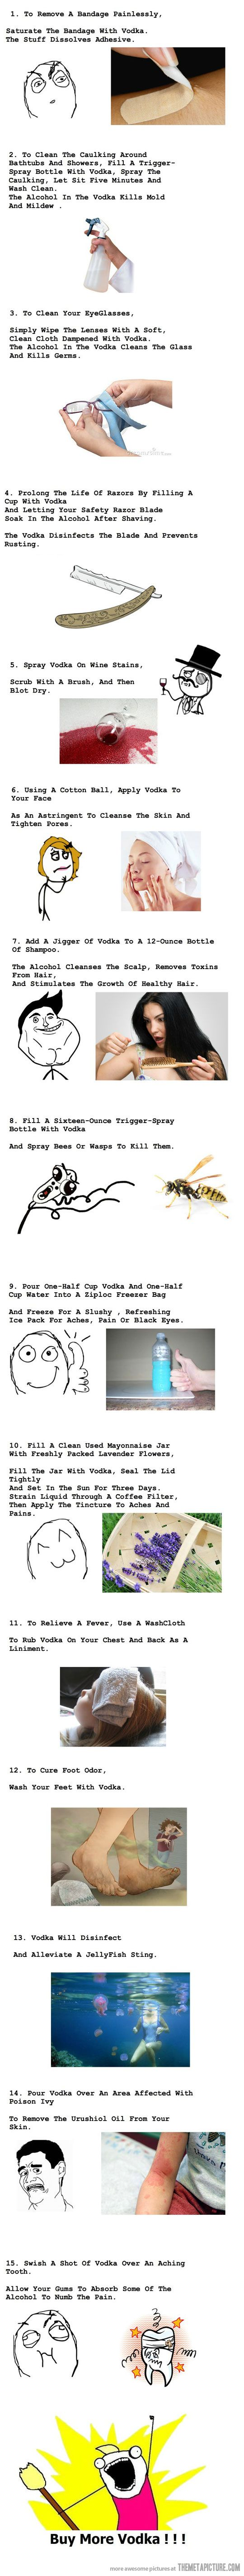 Top 15 Weird Uses for Vodka